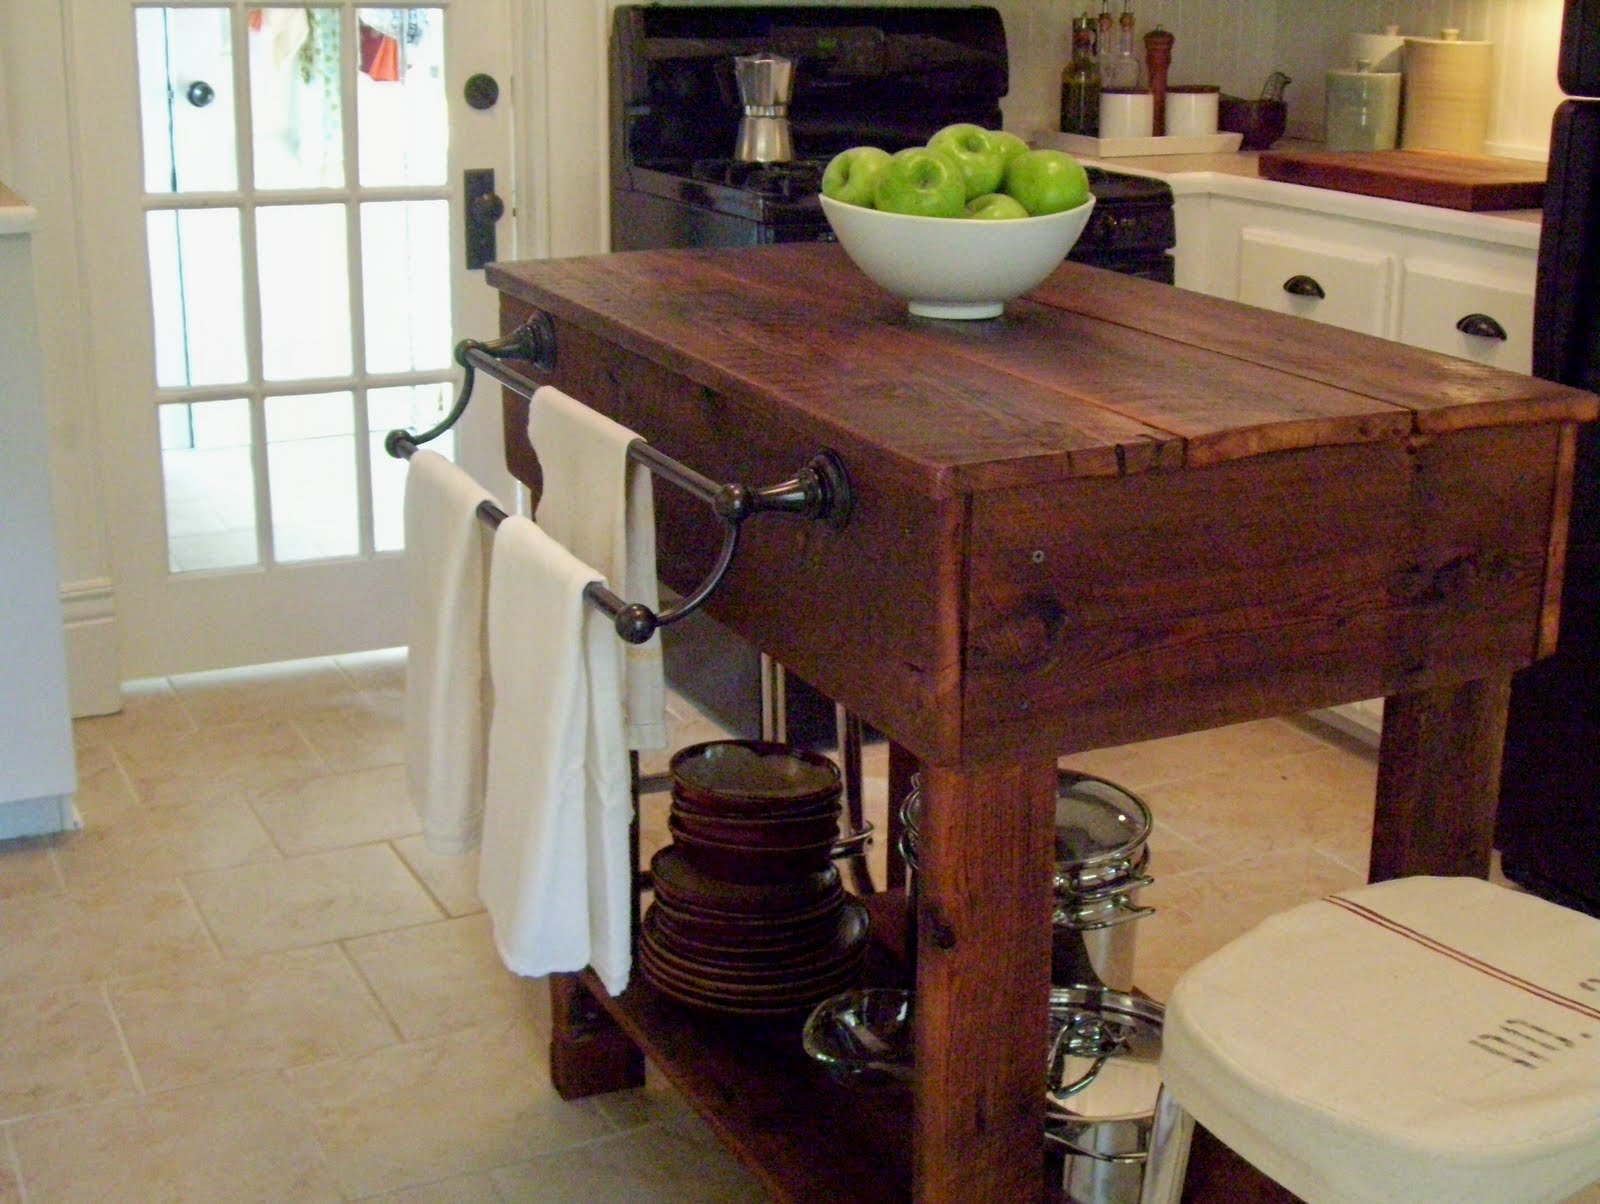 10. Rustic Kitchen Island with Towel Holder via Simphome